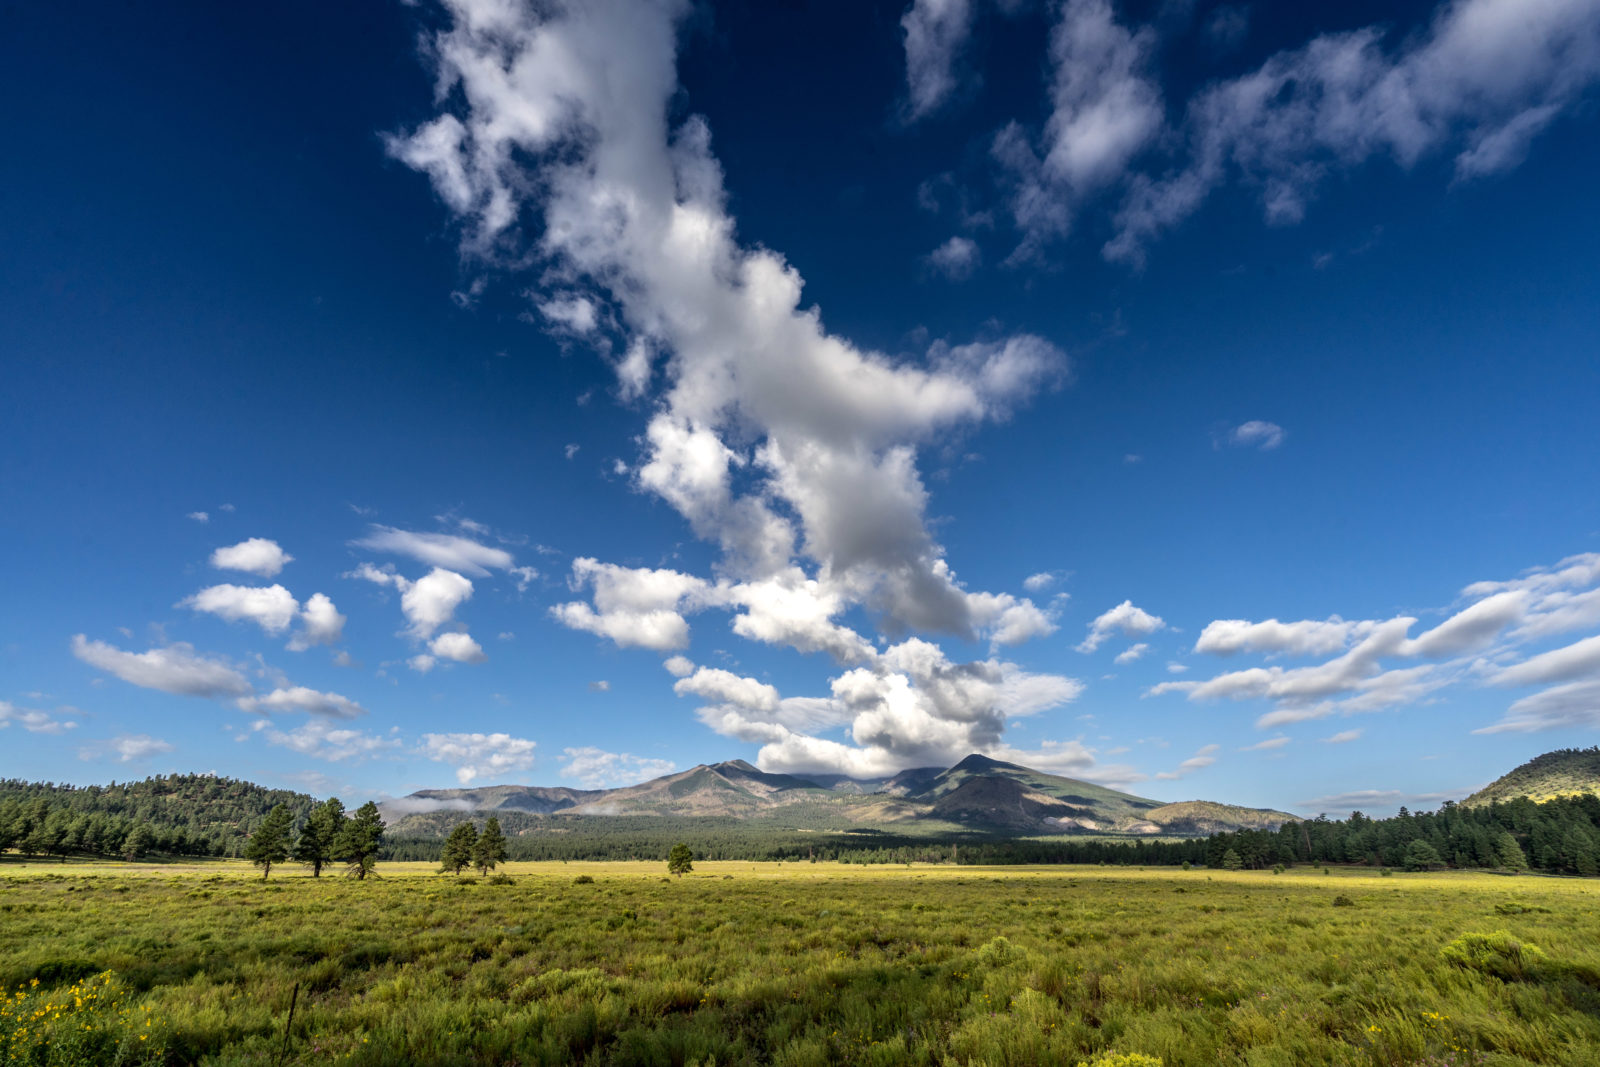 Viewing the San Francisco peaks on a summer day